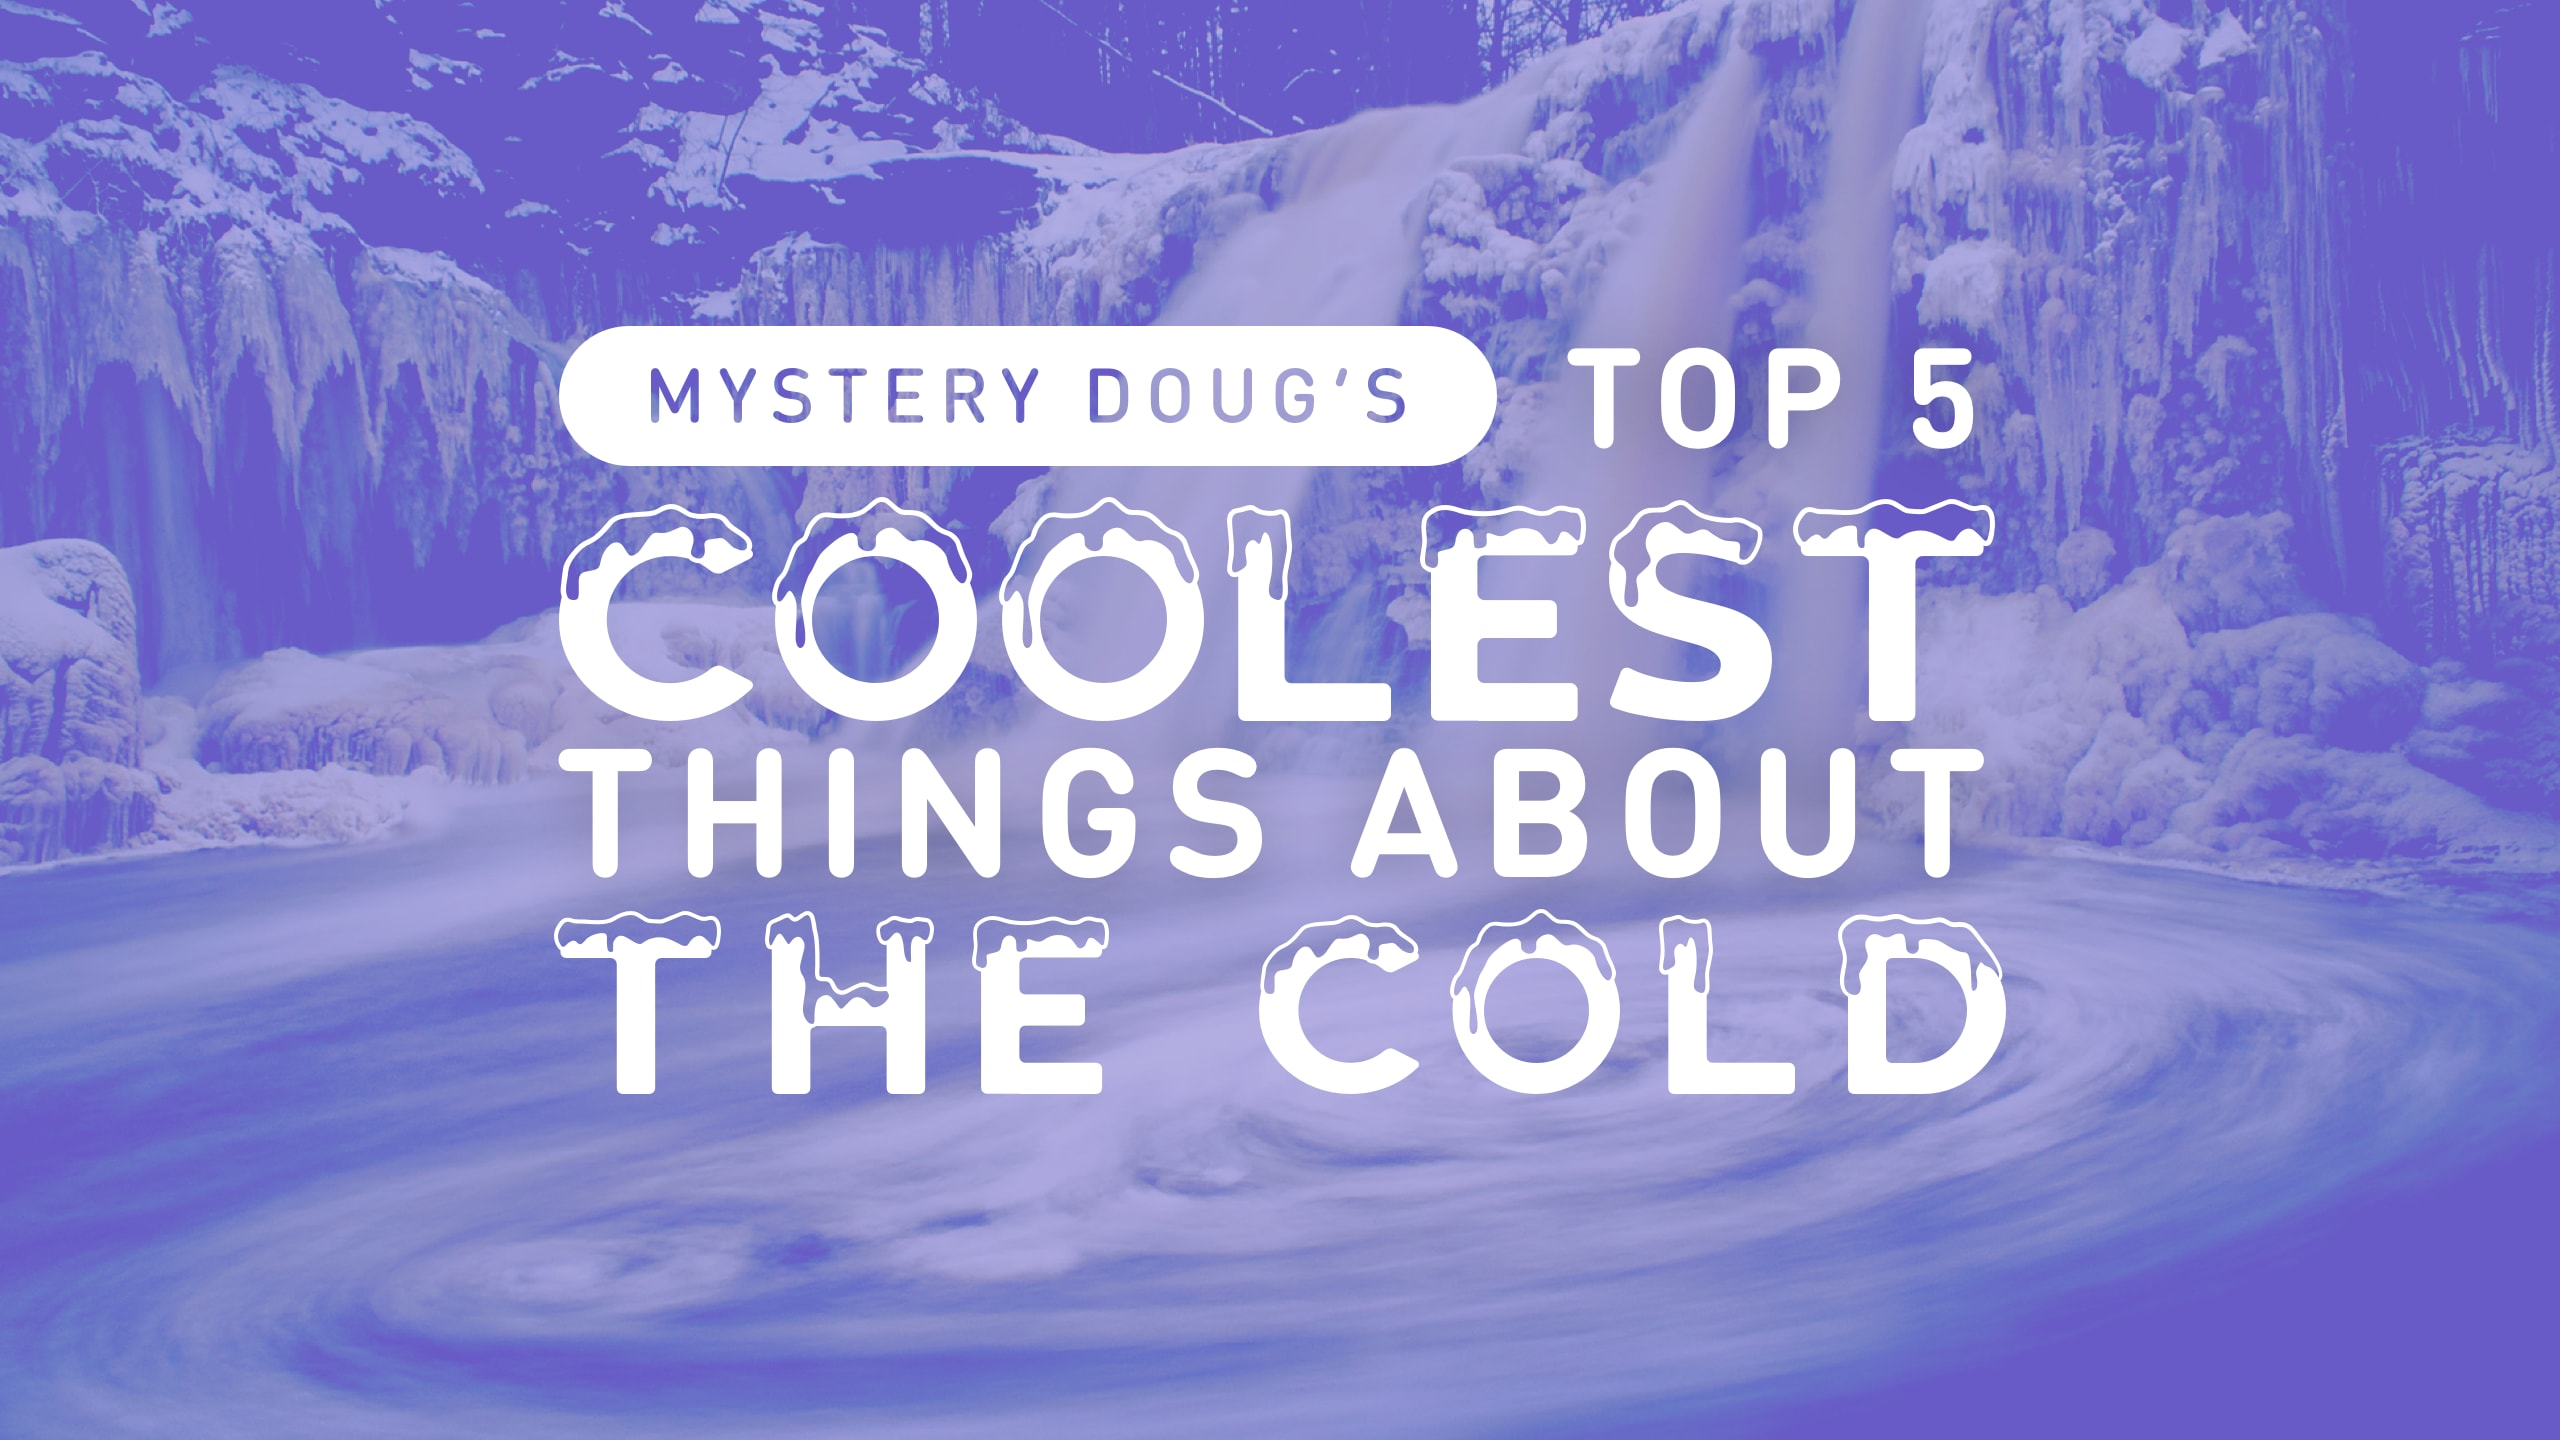 Top5 coldthings title